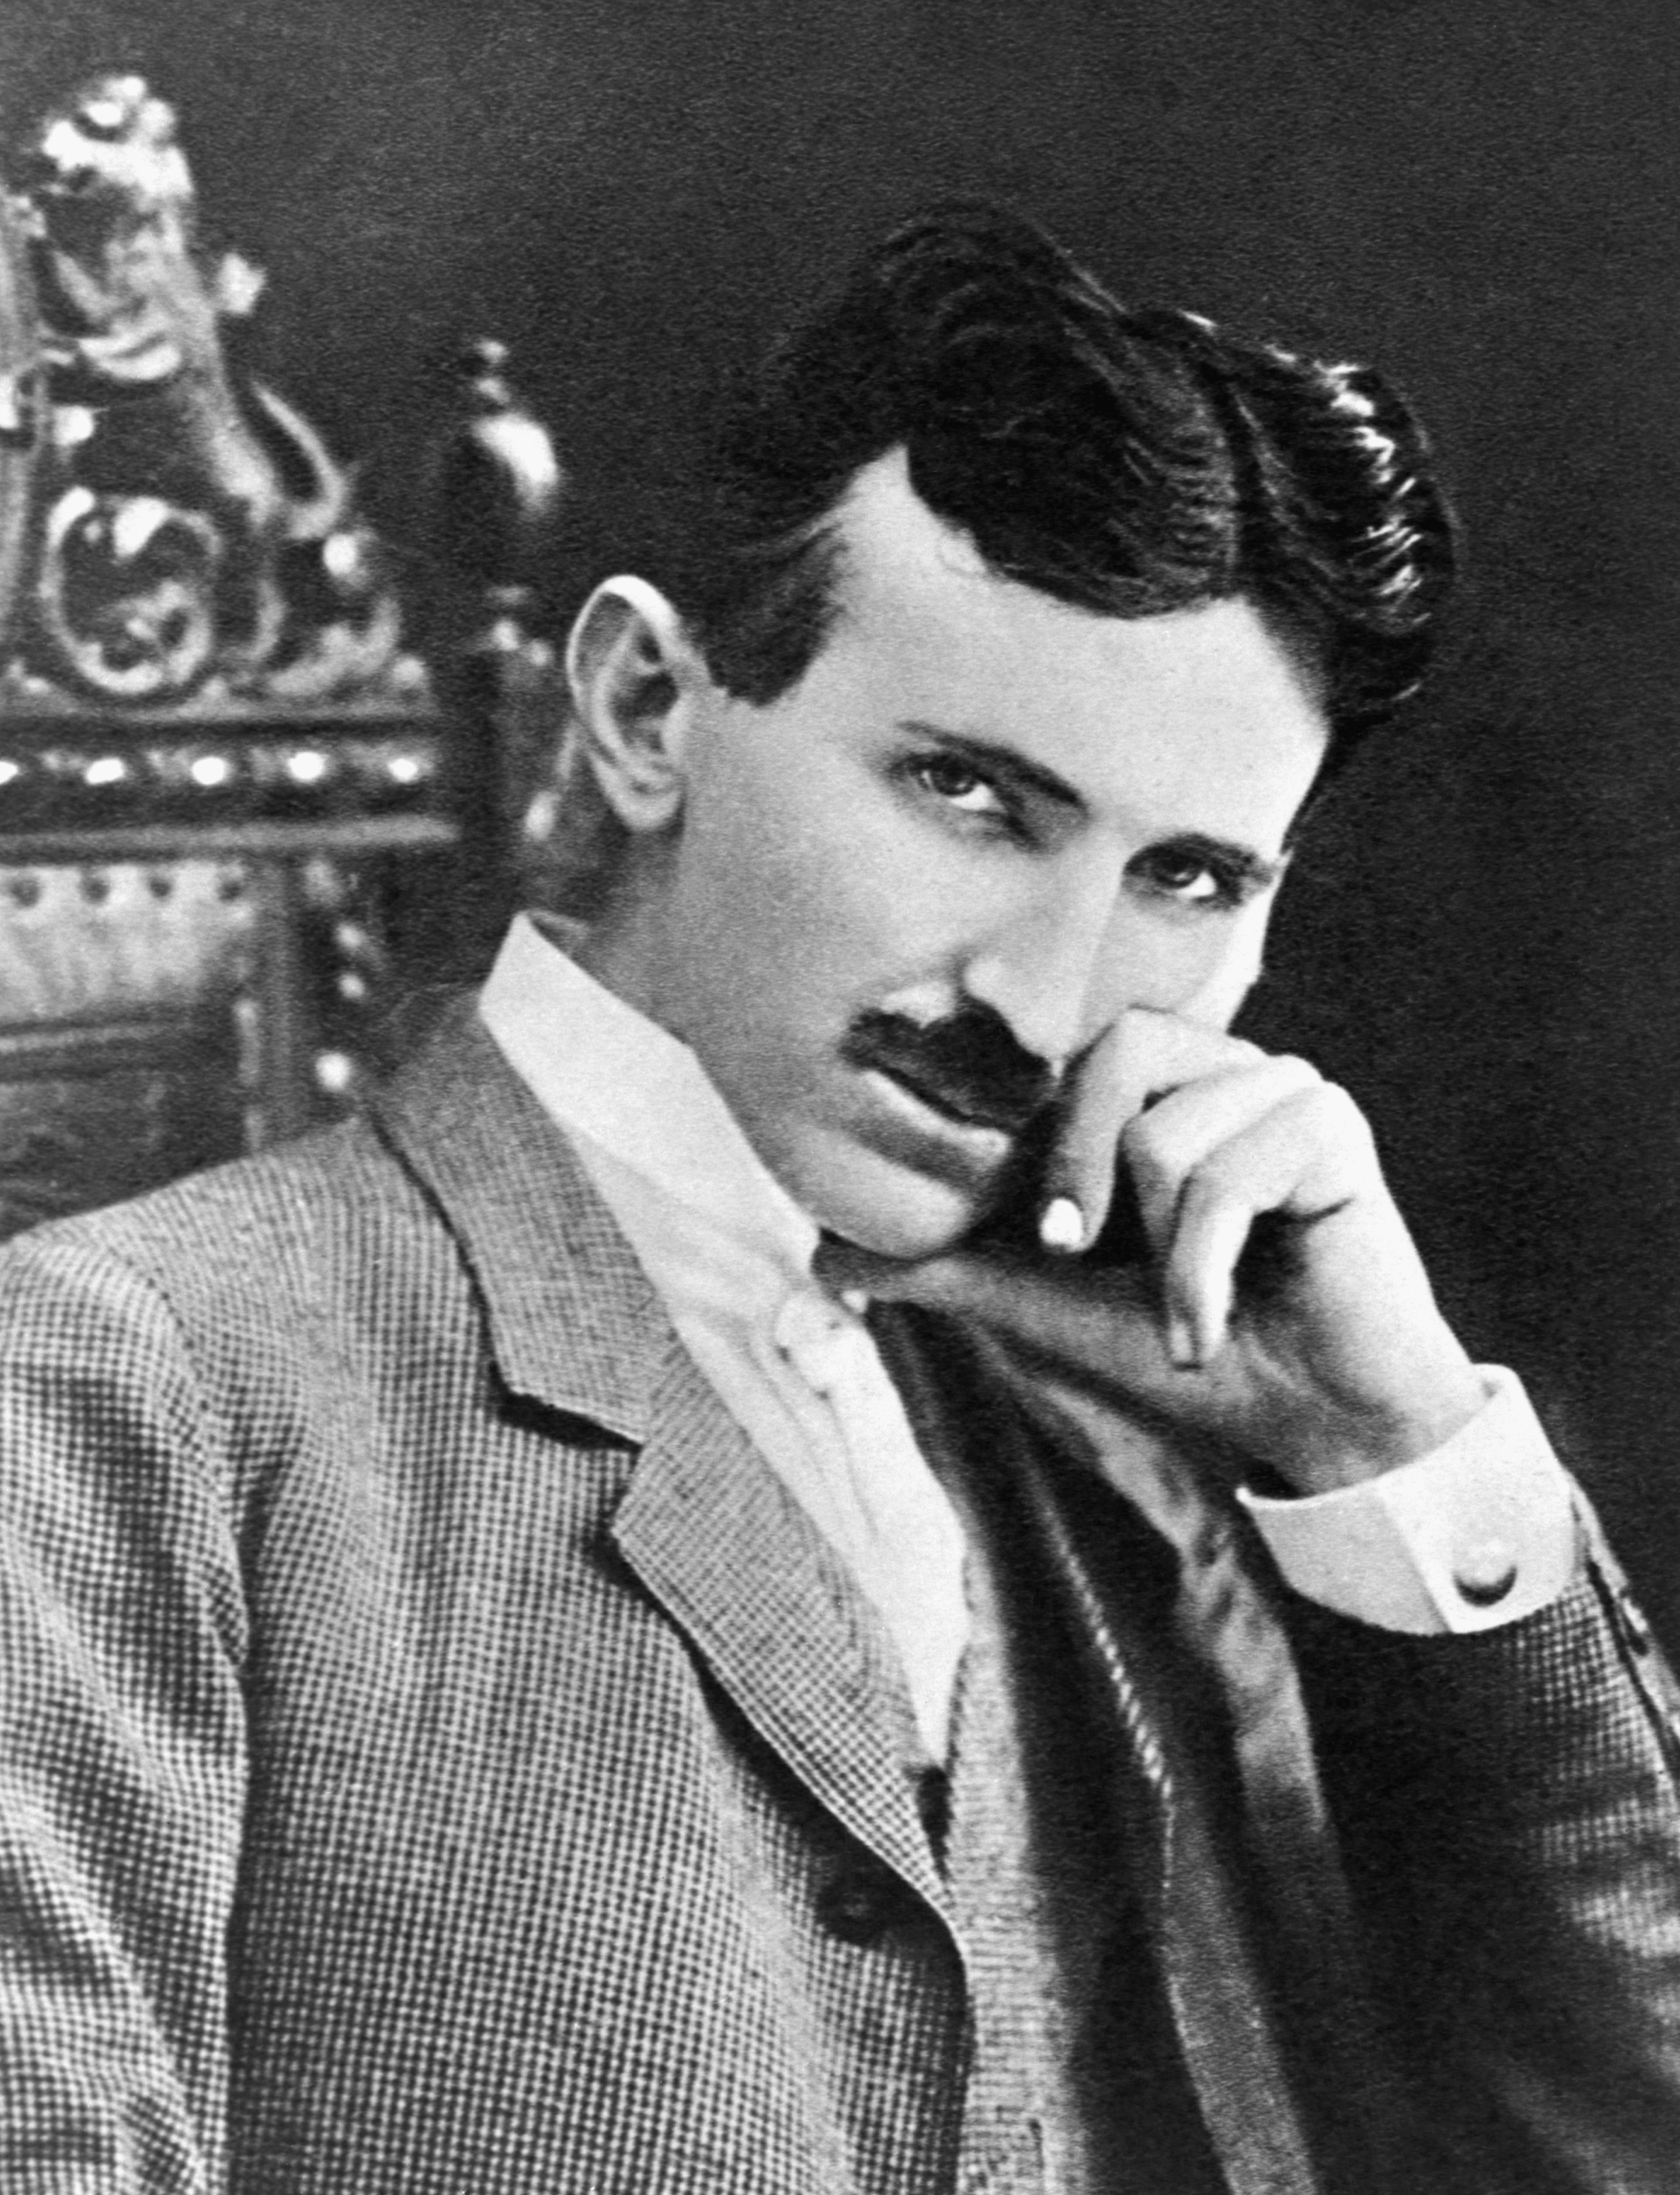 http://upload.wikimedia.org/wikipedia/commons/d/d4/N.Tesla.JPG